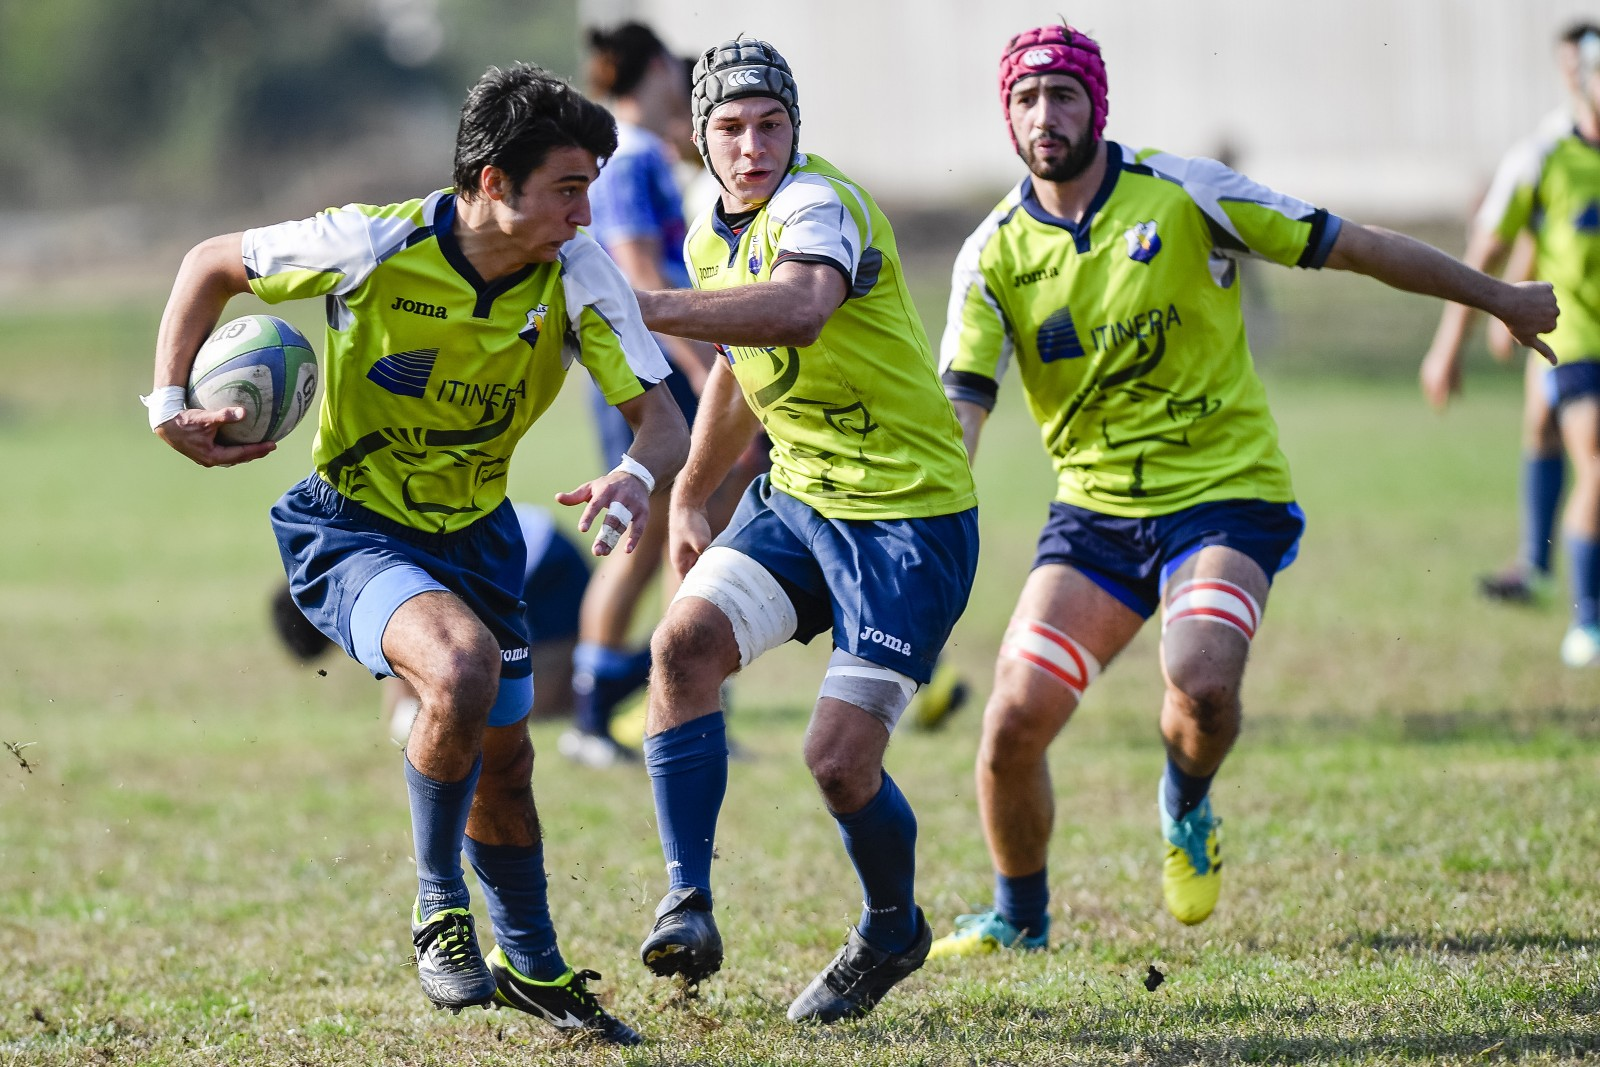 Serie A: Itinera CUS Ad Maiora Rugby 1951 - Rugby Lions